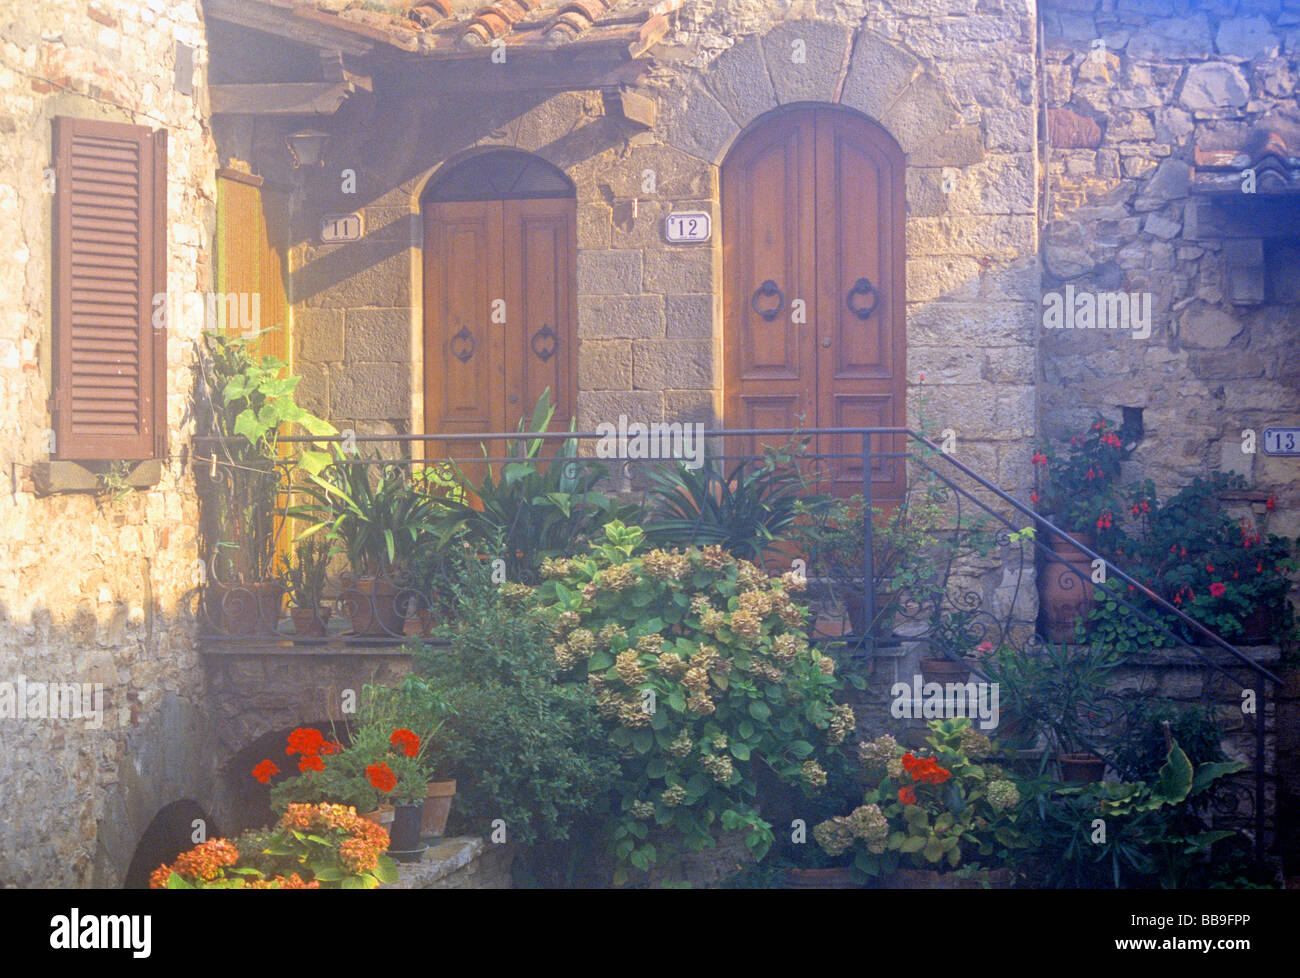 flowered patio of residential building region of tuskany italy - Stock Image